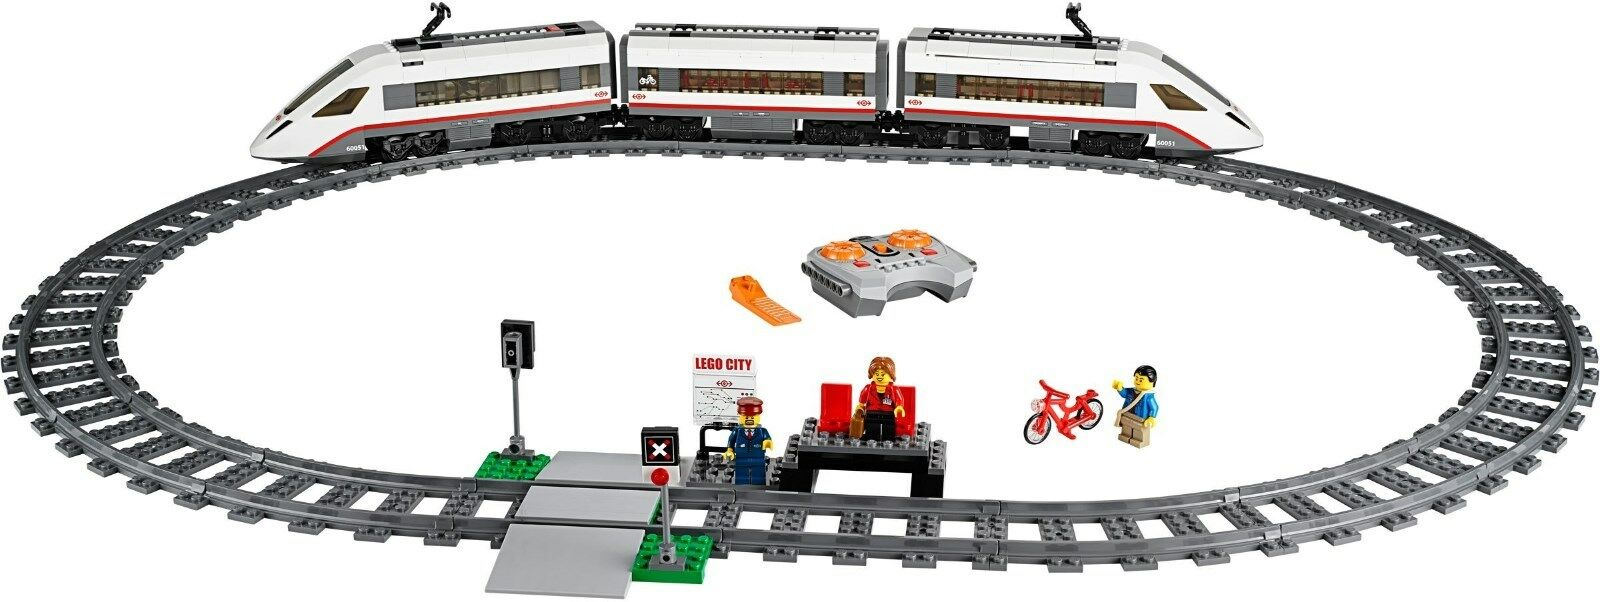 60051 LEGO High-Speed Passenger Train w  3 minifigs - New